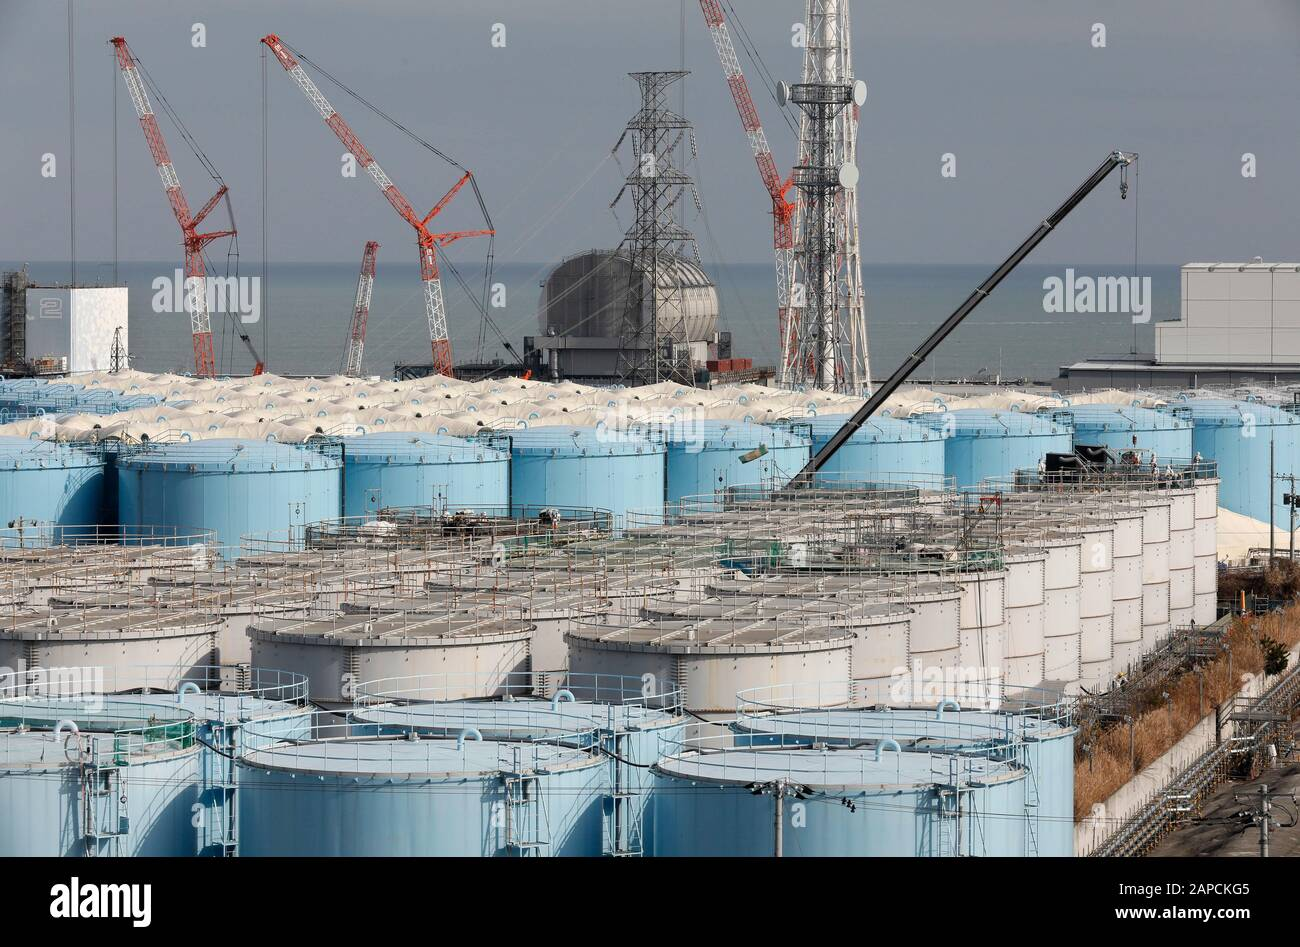 January 22, 2020, Okuma, Fukushima, Japan: Workers demolish old storage tanks included water processed in ALPS(Multi-nuclide retrieval equipment) at  tsunami-devastated Tokyo Electric Power Company (TEPCO) Fukushima Daiichi Nuclear Power Plant in Okuma town, Fukushima Prefecture, 22 January 2020 after transferring to new tanks. The storage tanks including water processed in the ALPS will be full around summer of 2022, TEPCO has told. Japanese government will need to decide soon how manage the processed water still including tritium. The Unit 2 reactor house in left rear, the Unit 3 reactor hou Stock Photo